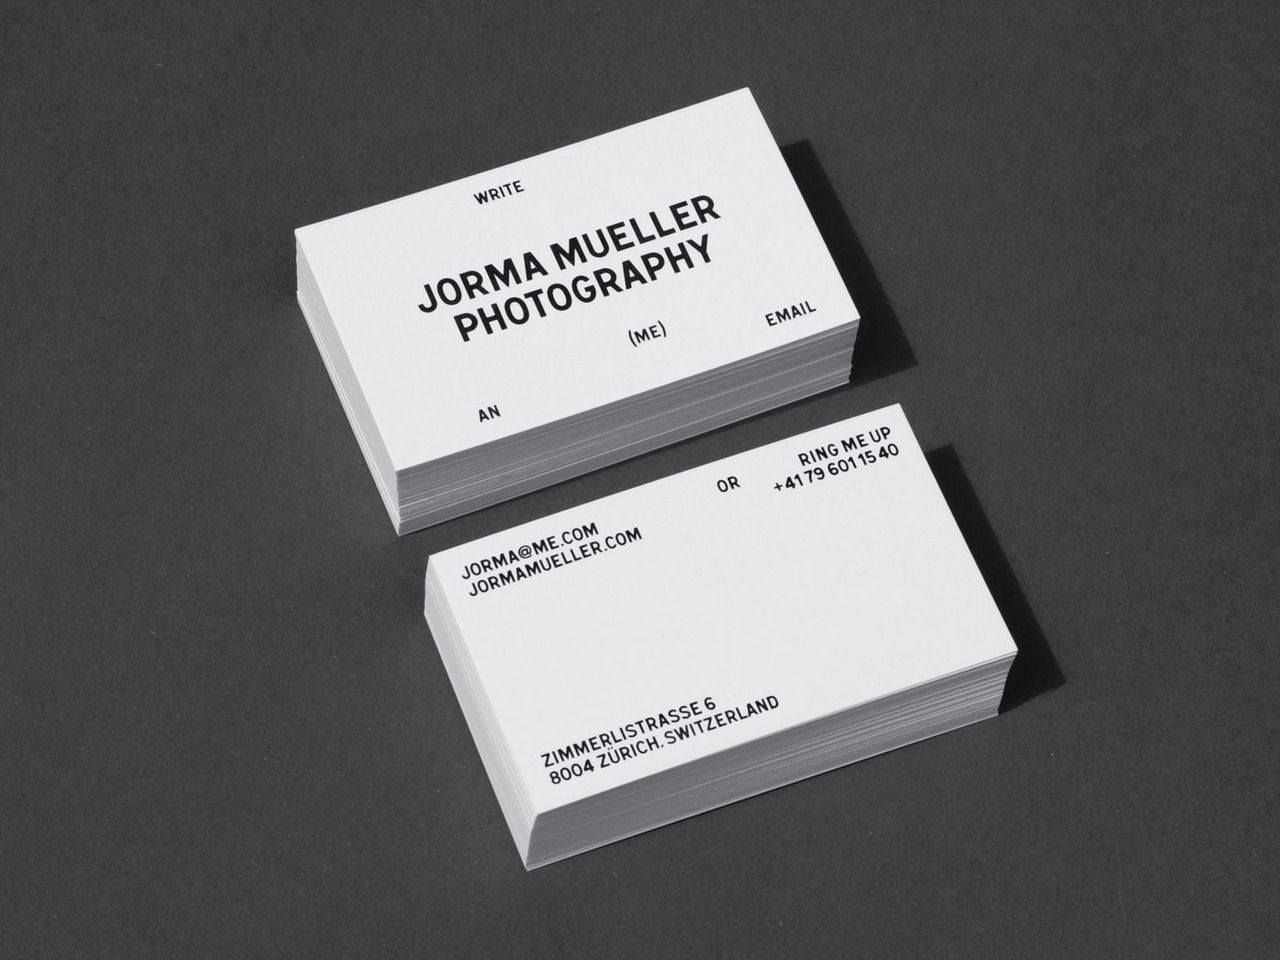 Jorma mueller photography bureaucollective design typography bureau collective jorma mueller photography in business card reheart Images